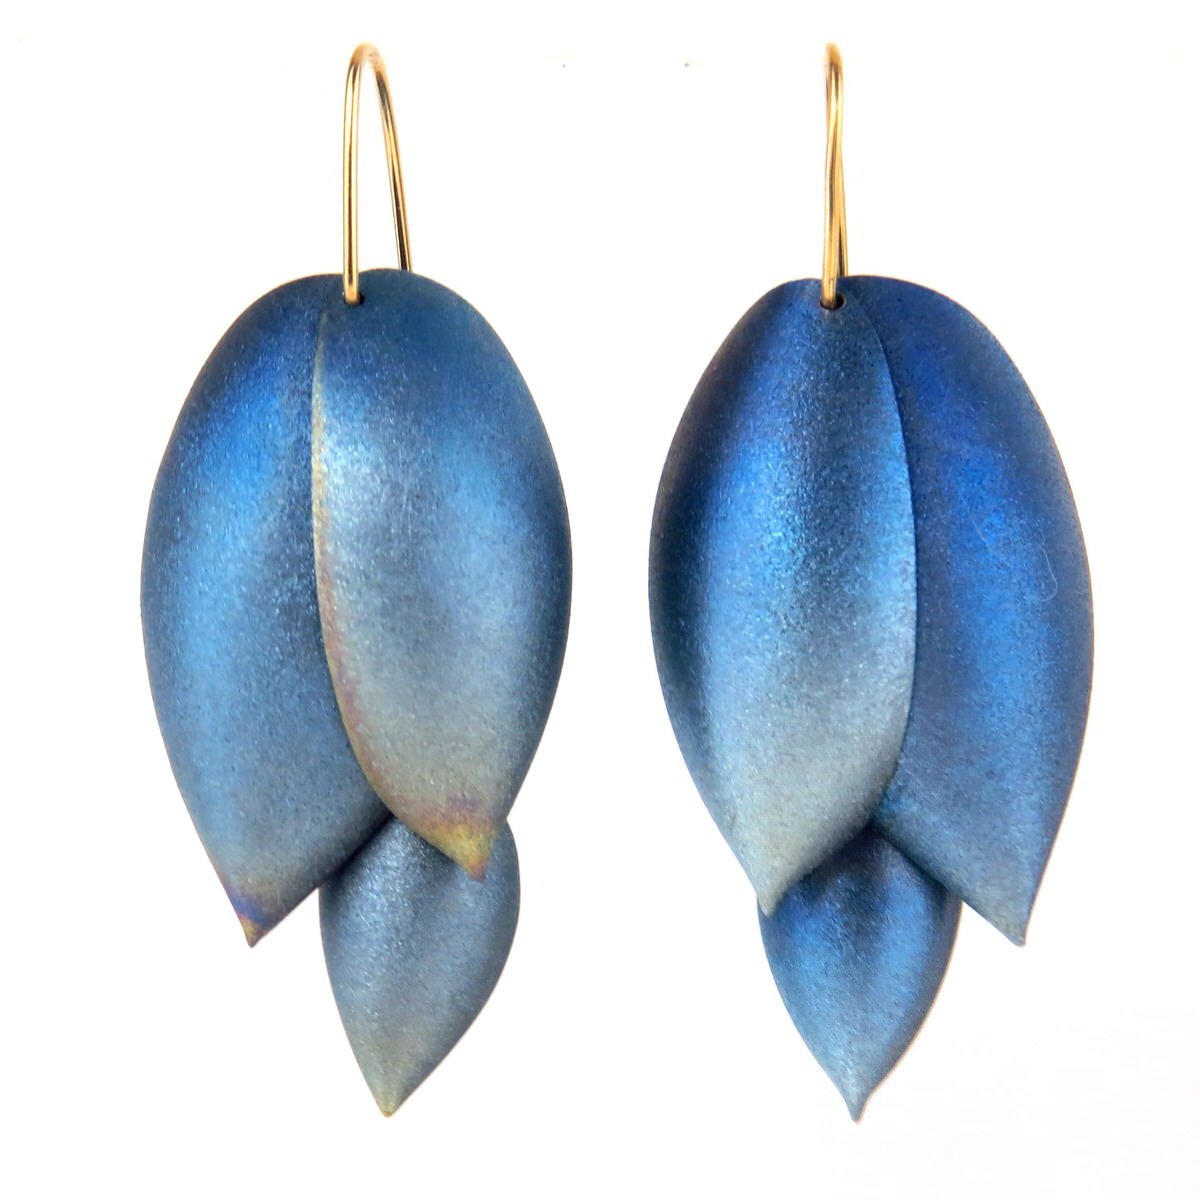 Niobium and 14k Gold Asparagus earrings by Ted Muehling